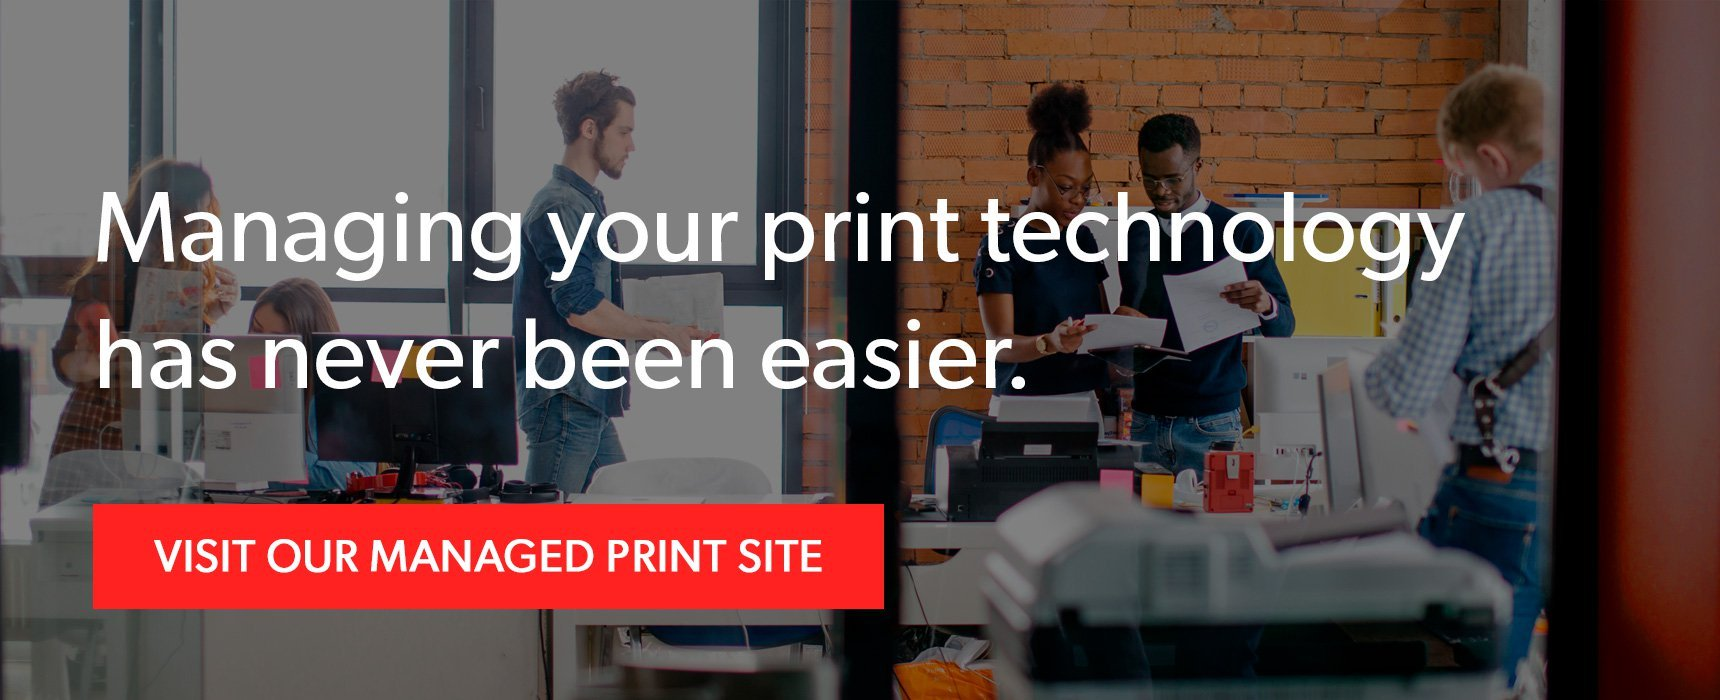 Managing your print technology has never been easier